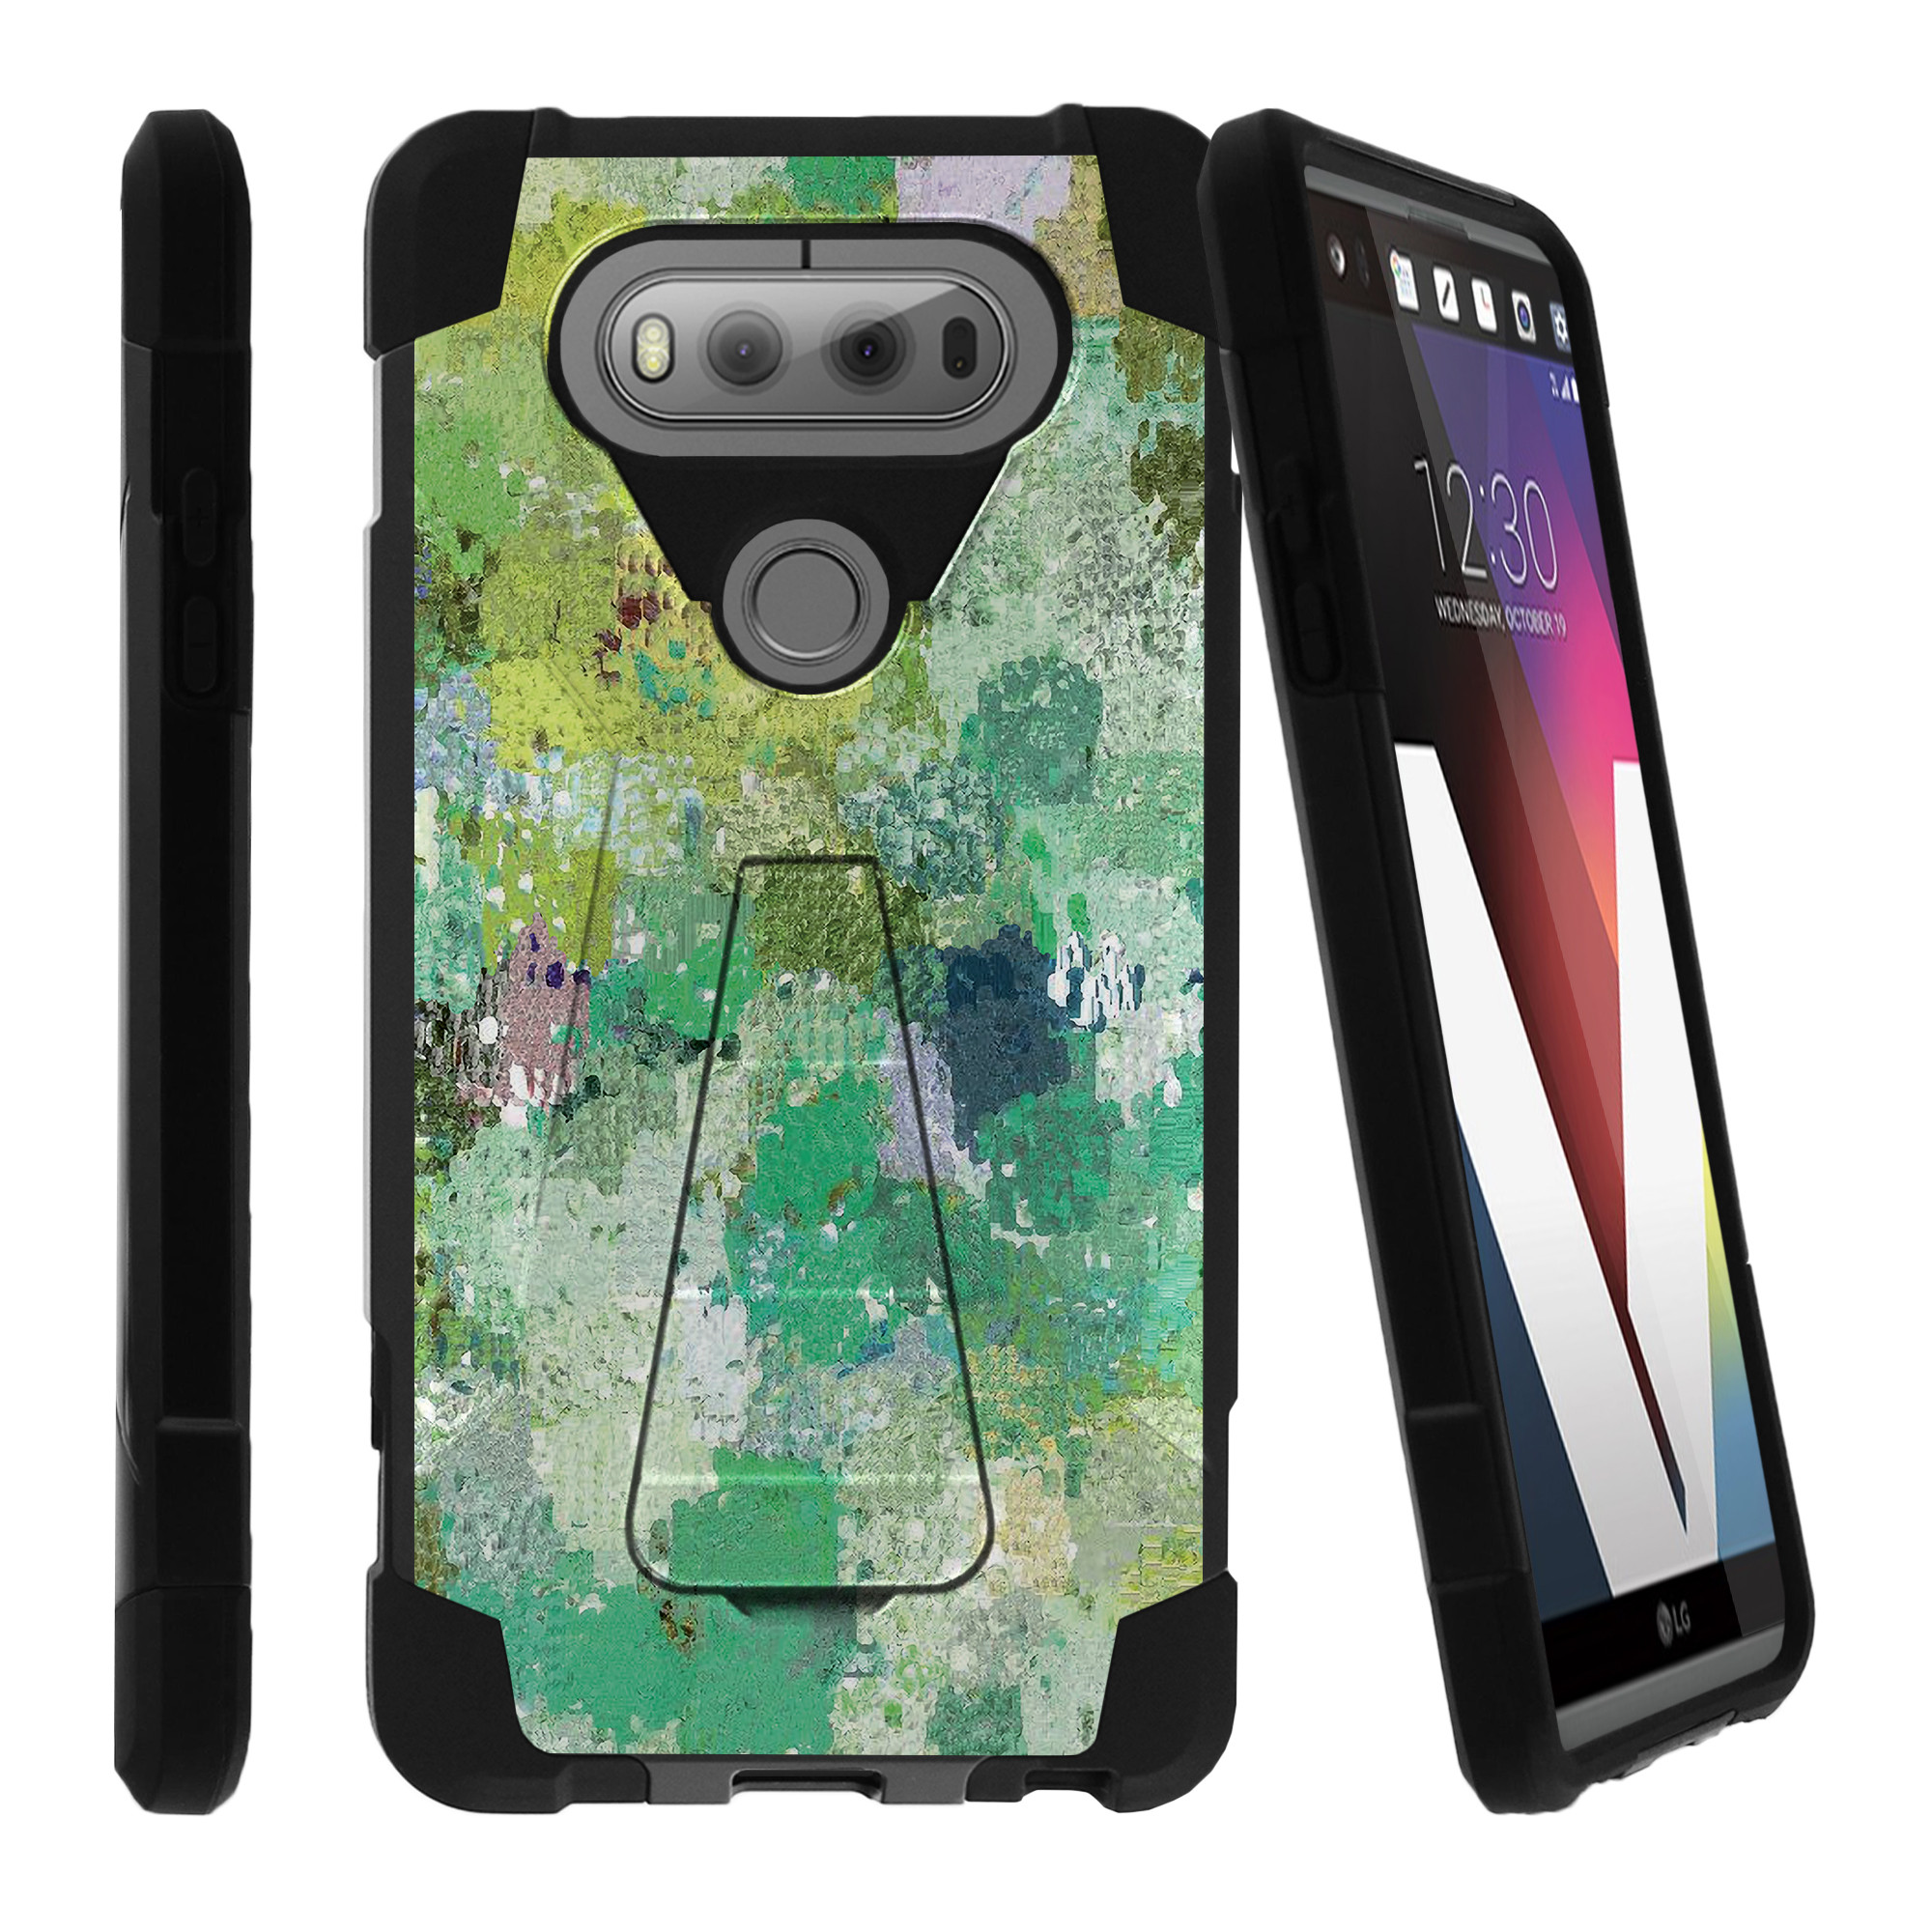 LG V20 SHOCK FUSION Heavy Duty Dual Layer Shock Impact Resistant Case with Built In Kickstand and Exclusive Designs - Enveloping Green